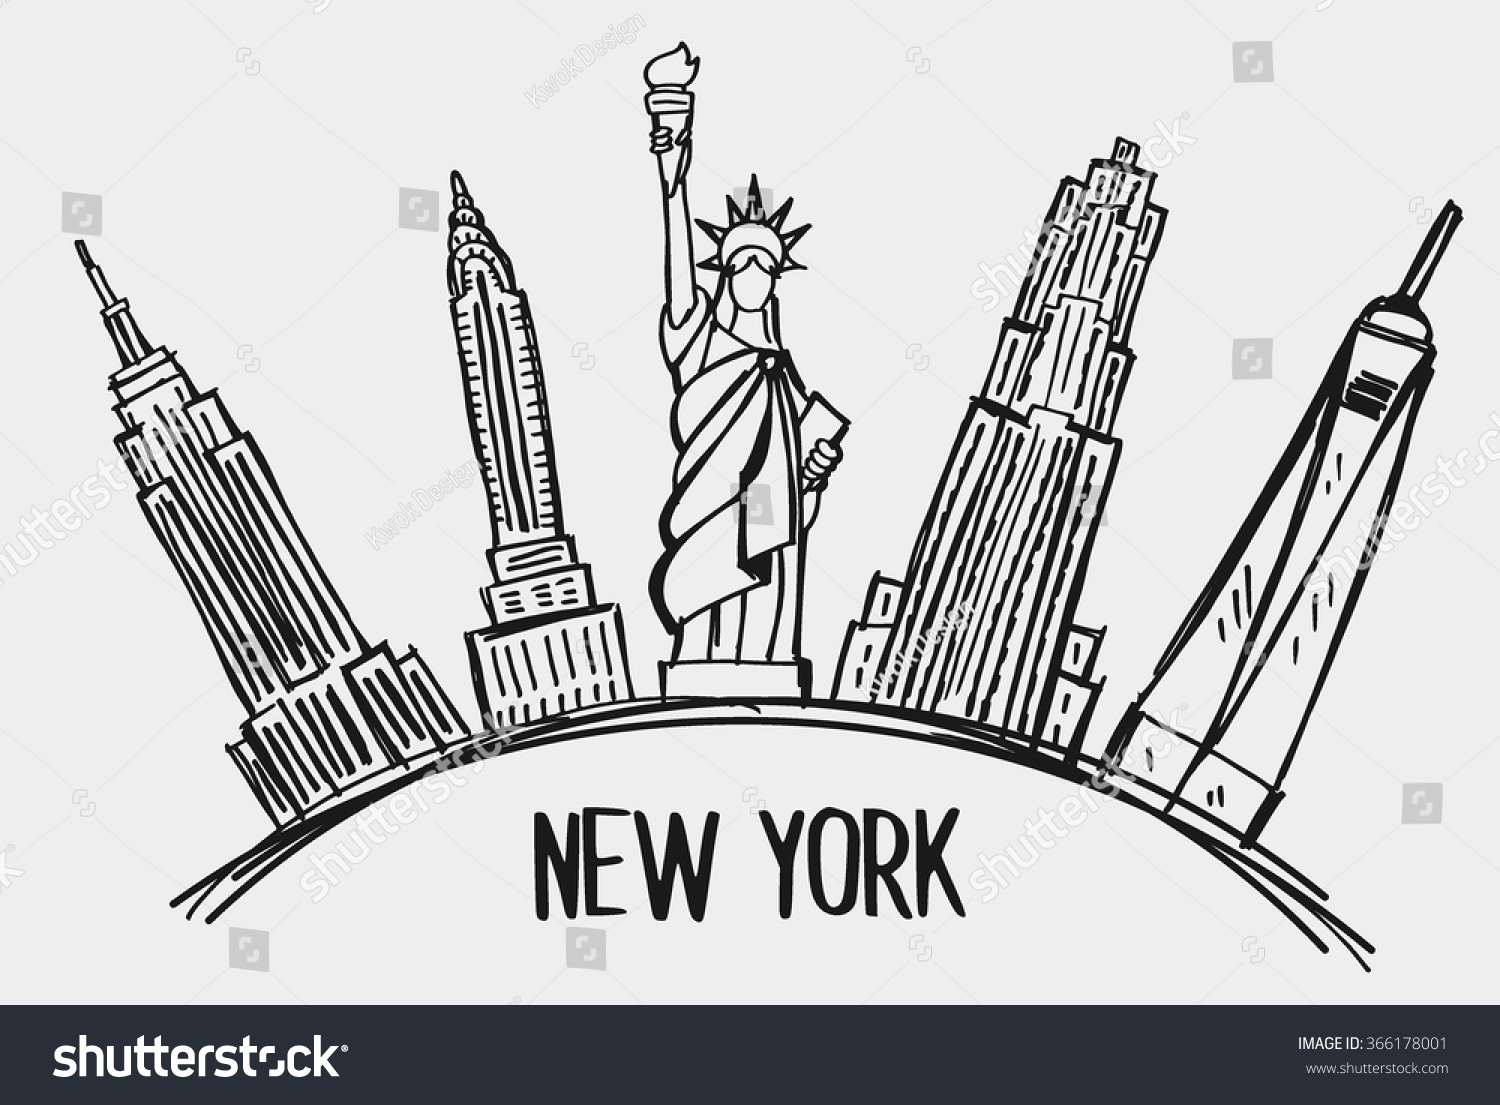 New Line Art Design : New york city skyline line art stock vector